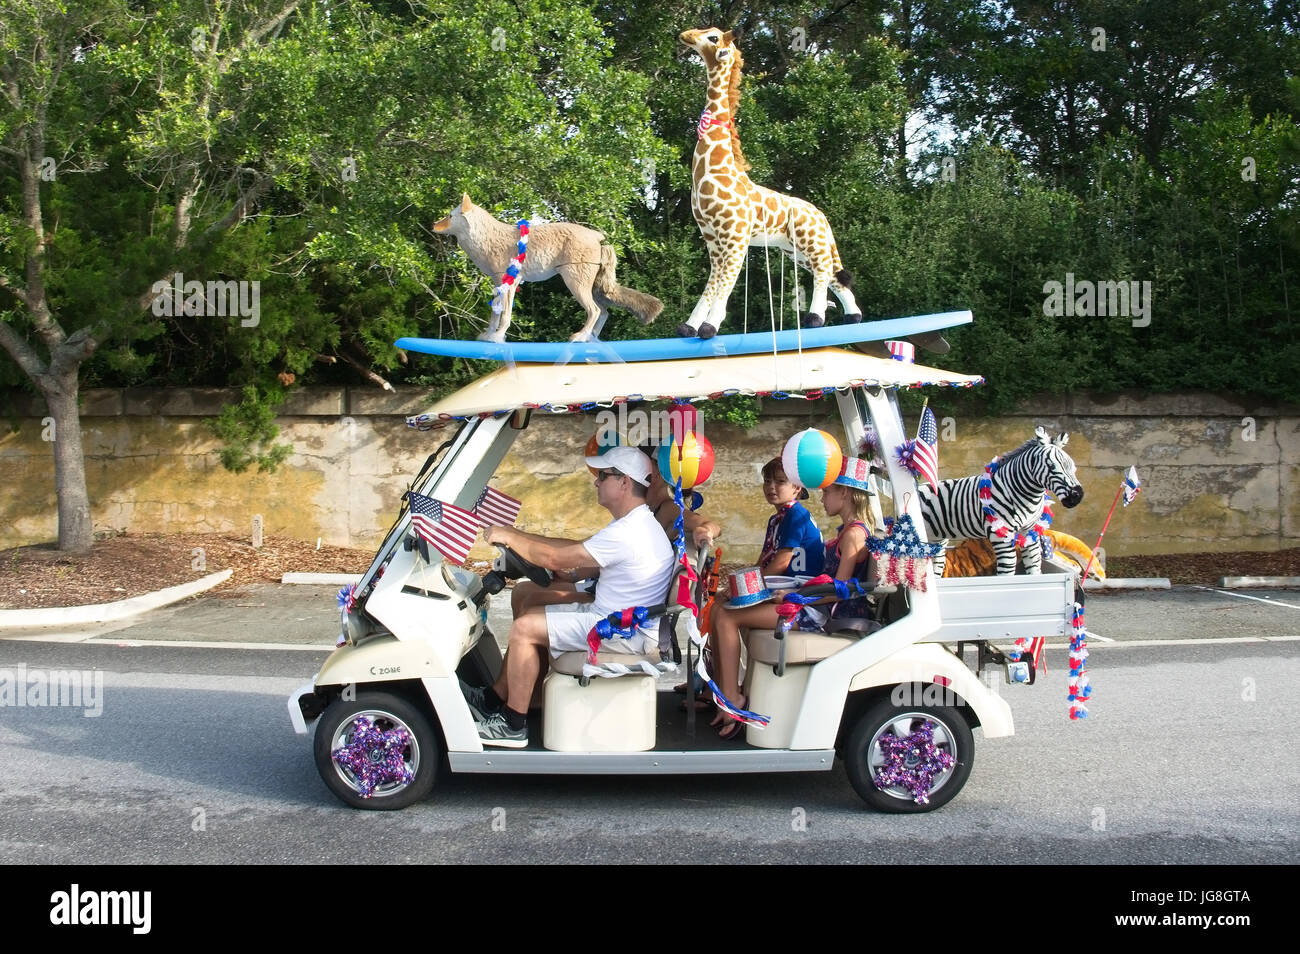 Sullivan's Island, South Carolina, USA. 4th July, 2017. A family rides along in a golf cart decorated with stuffed - Stock Image